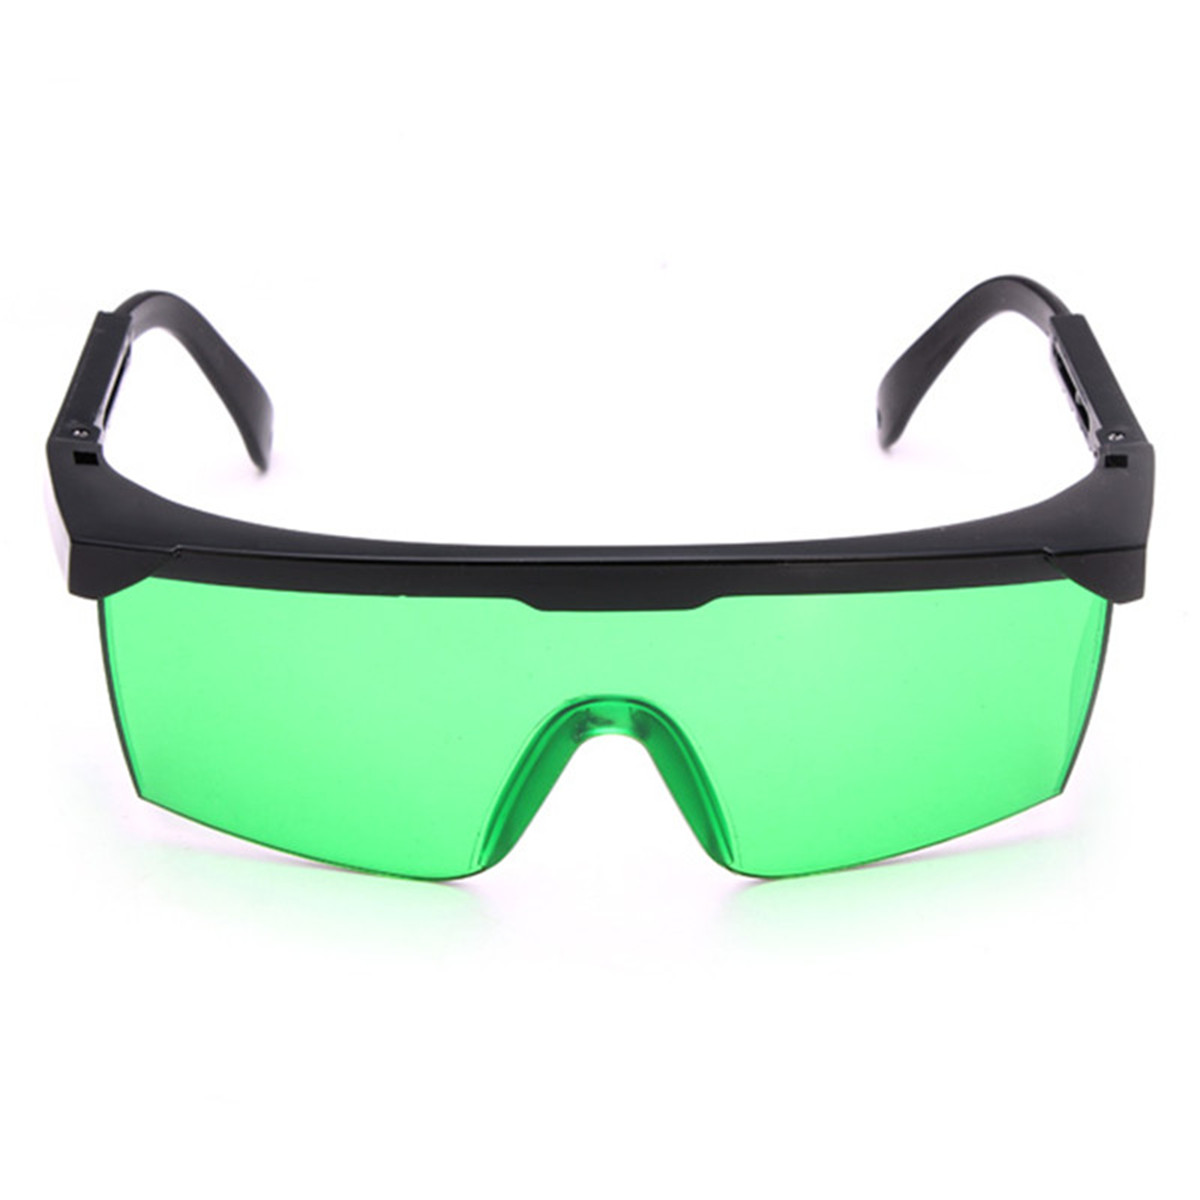 Laser Safety Glasses For Violet/Blue 200-450nm Absorption Round Protective Goggles Laser Protective Glasses Goggles